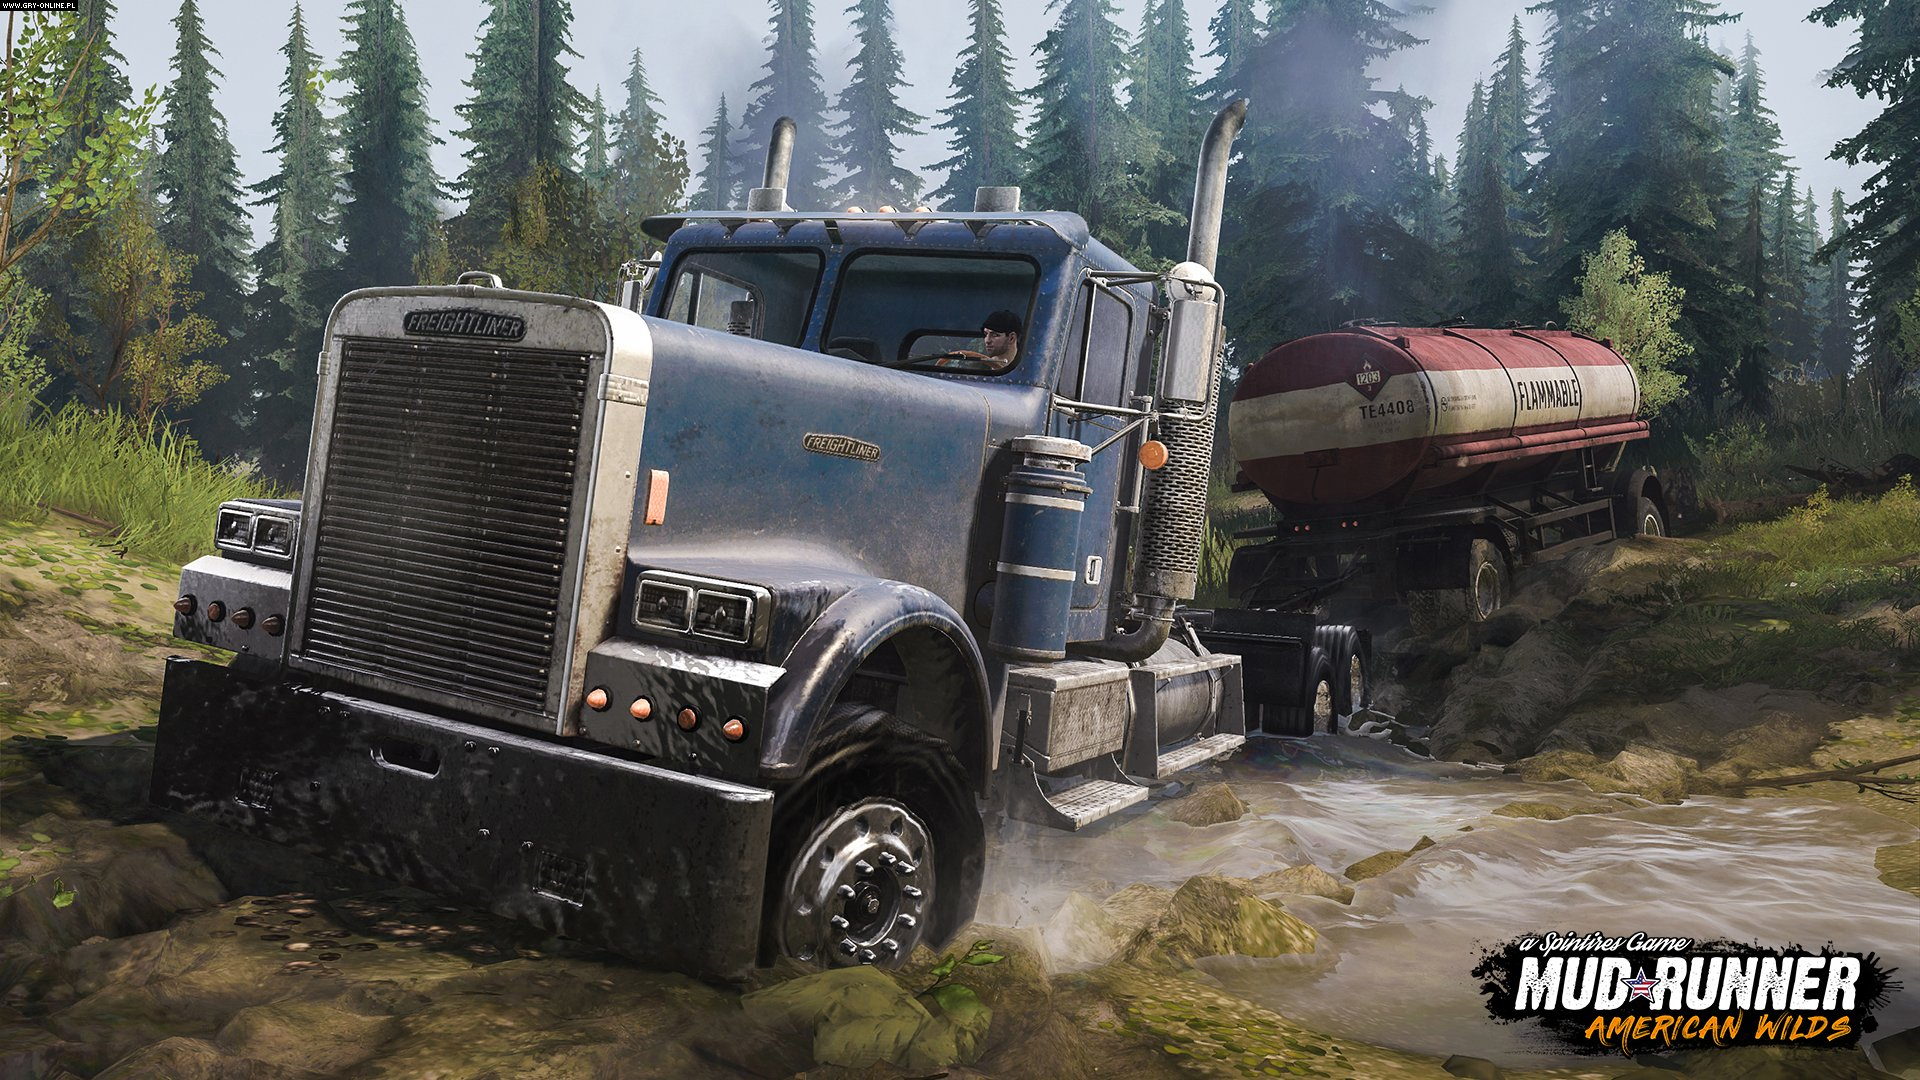 Spintires: MudRunner - American Wilds PC, PS4, XONE Gry Screen 1/3, Saber Interactive, Focus Home Interactive